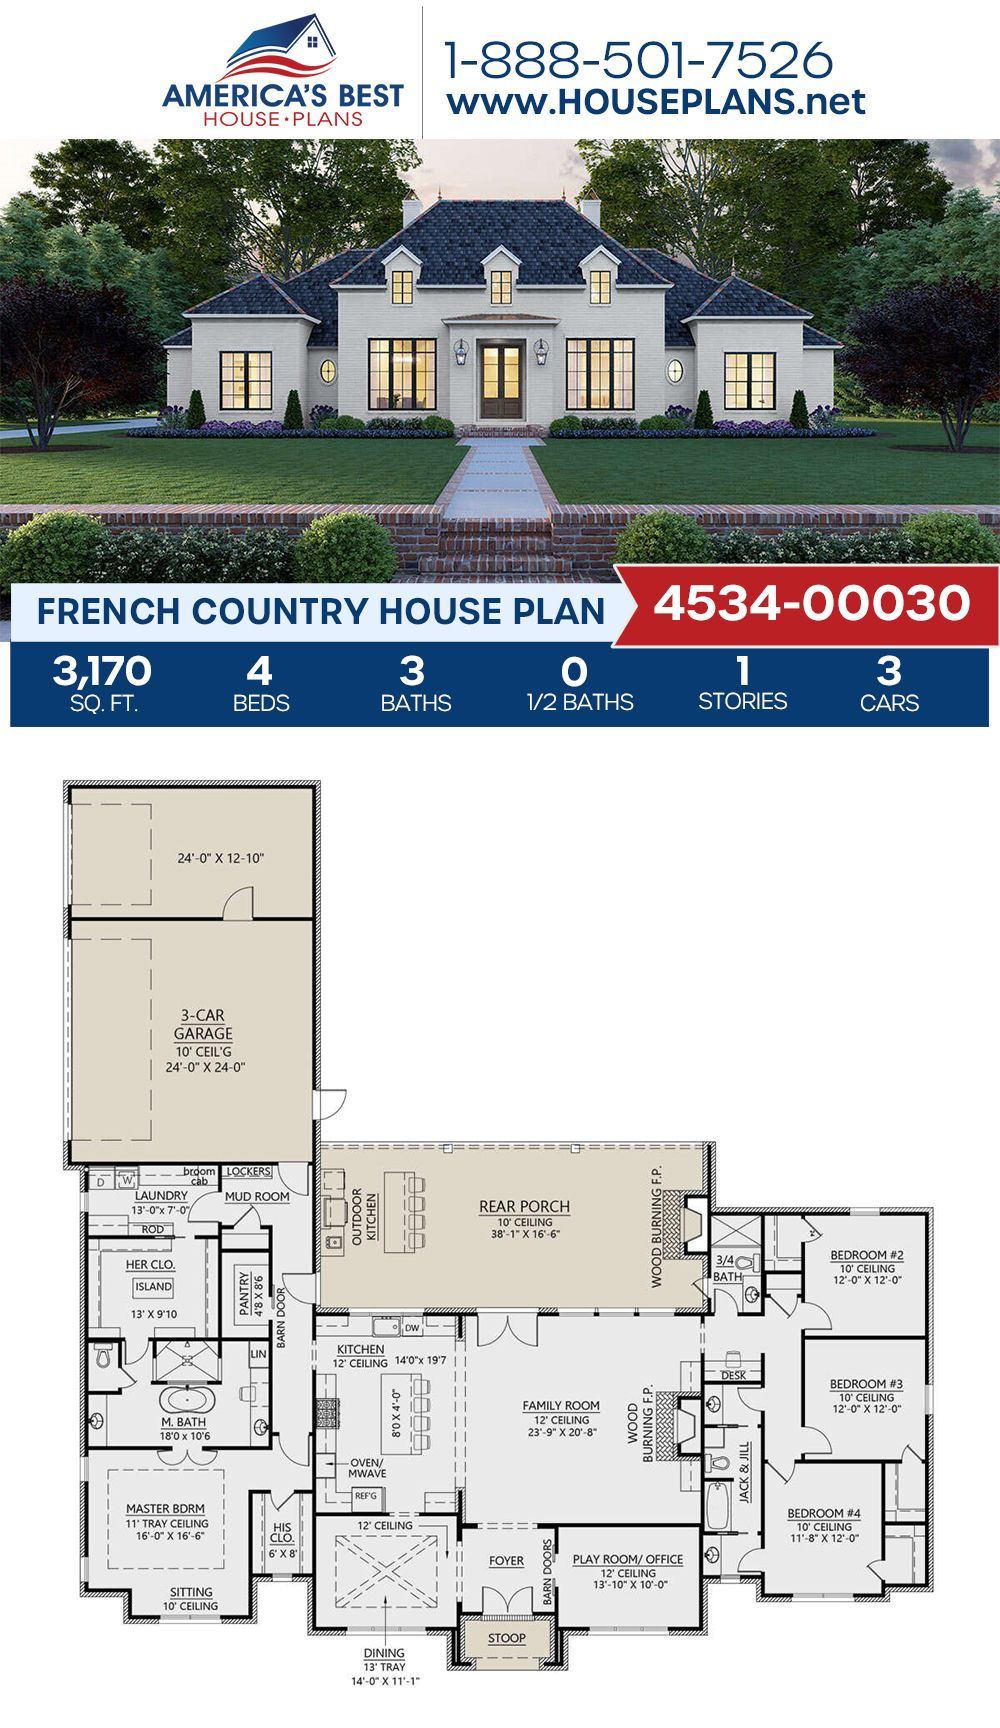 House Plan 4534 00030 French Country Plan 3 170 Square Feet 4